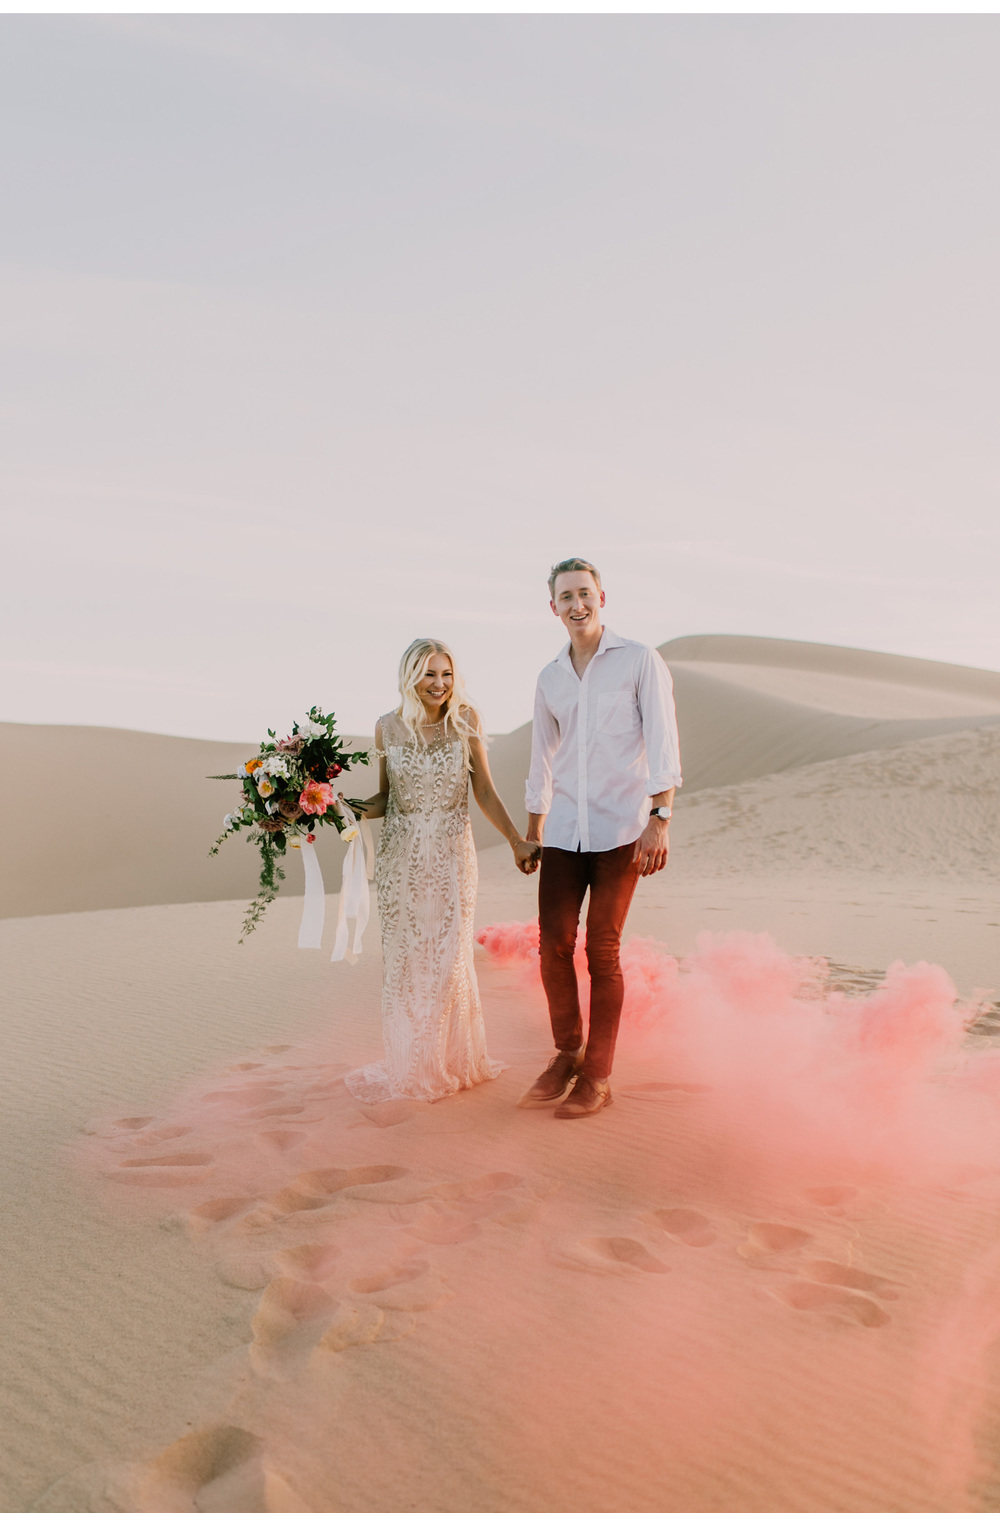 Desert-Wedding-Free-People-Wedding-Natalie-Schutt-Photography_03.jpg